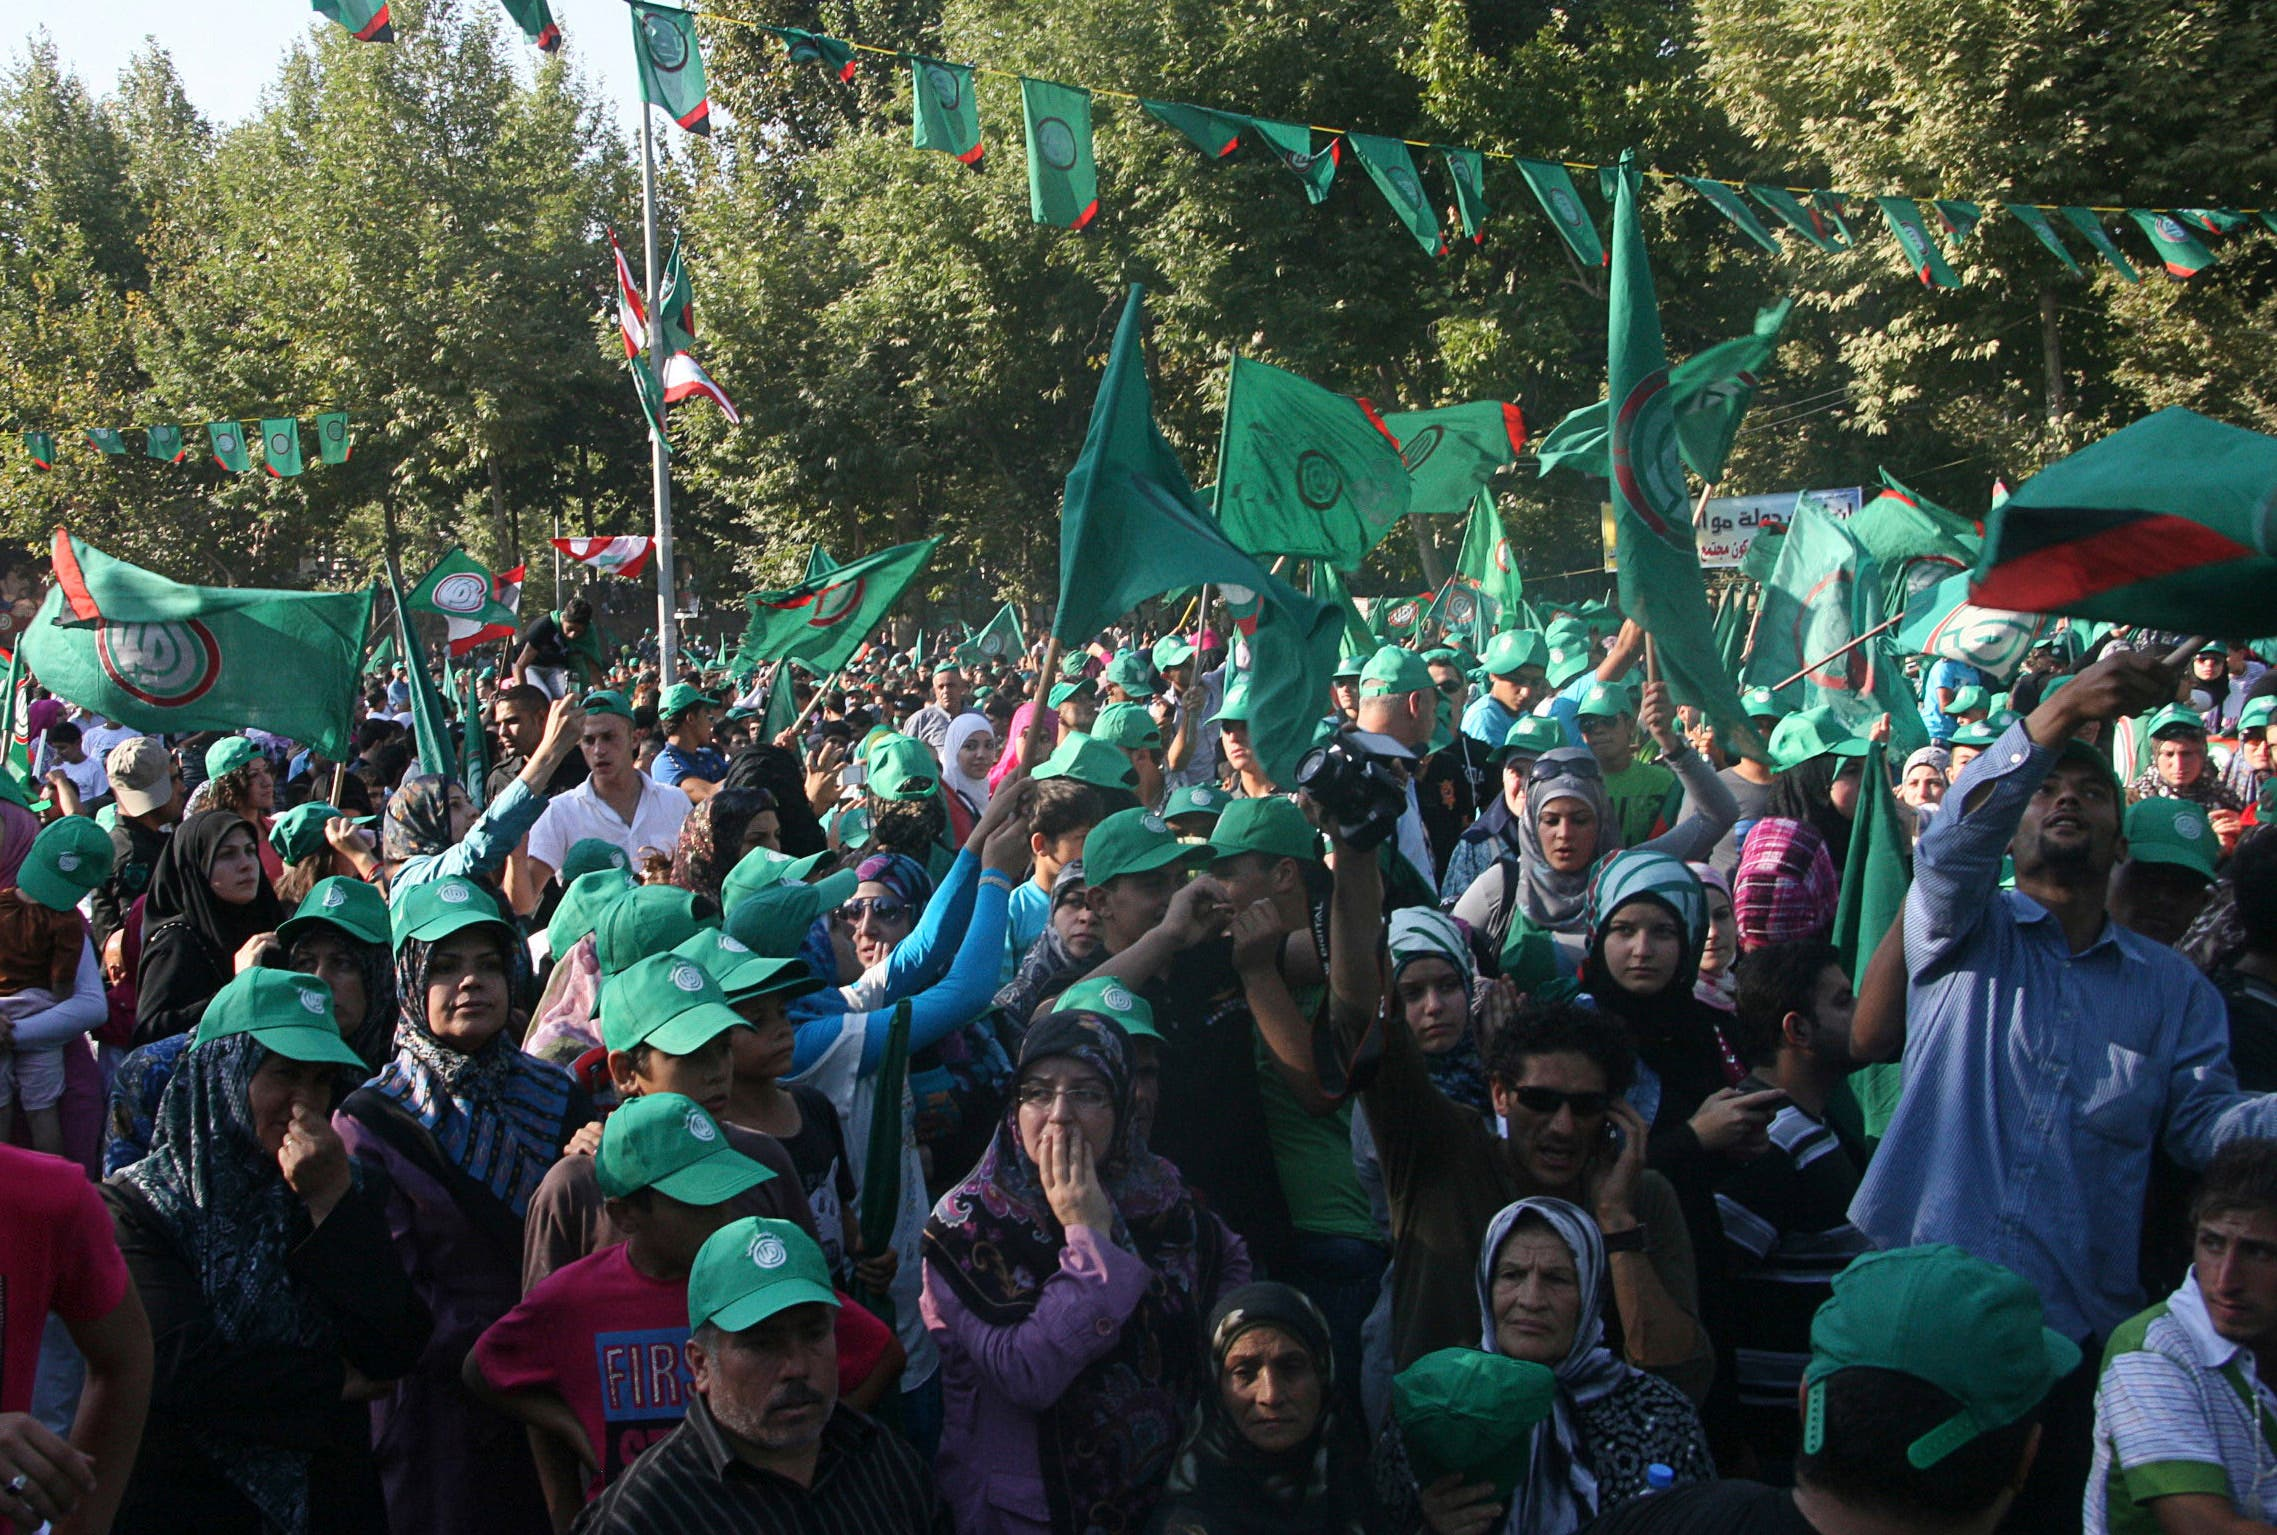 Supporters of the Shi'ite Amal movement wave flags during a rally to mark the 33rd anniversary of the disappearance of Imam Musa al-Sadr, who was the founder and leader of the Amal movement in Lebanon, in Baalbeck, in the Bekaa valley August 31, 2011. Sadr, the founder of the Shi'ite Amal movement, disappeared with his two companions on a visit to Libya in 1978. REUTERS/ Ahmad Shalha (LEBANON - Tags: POLITICS CIVIL UNREST)